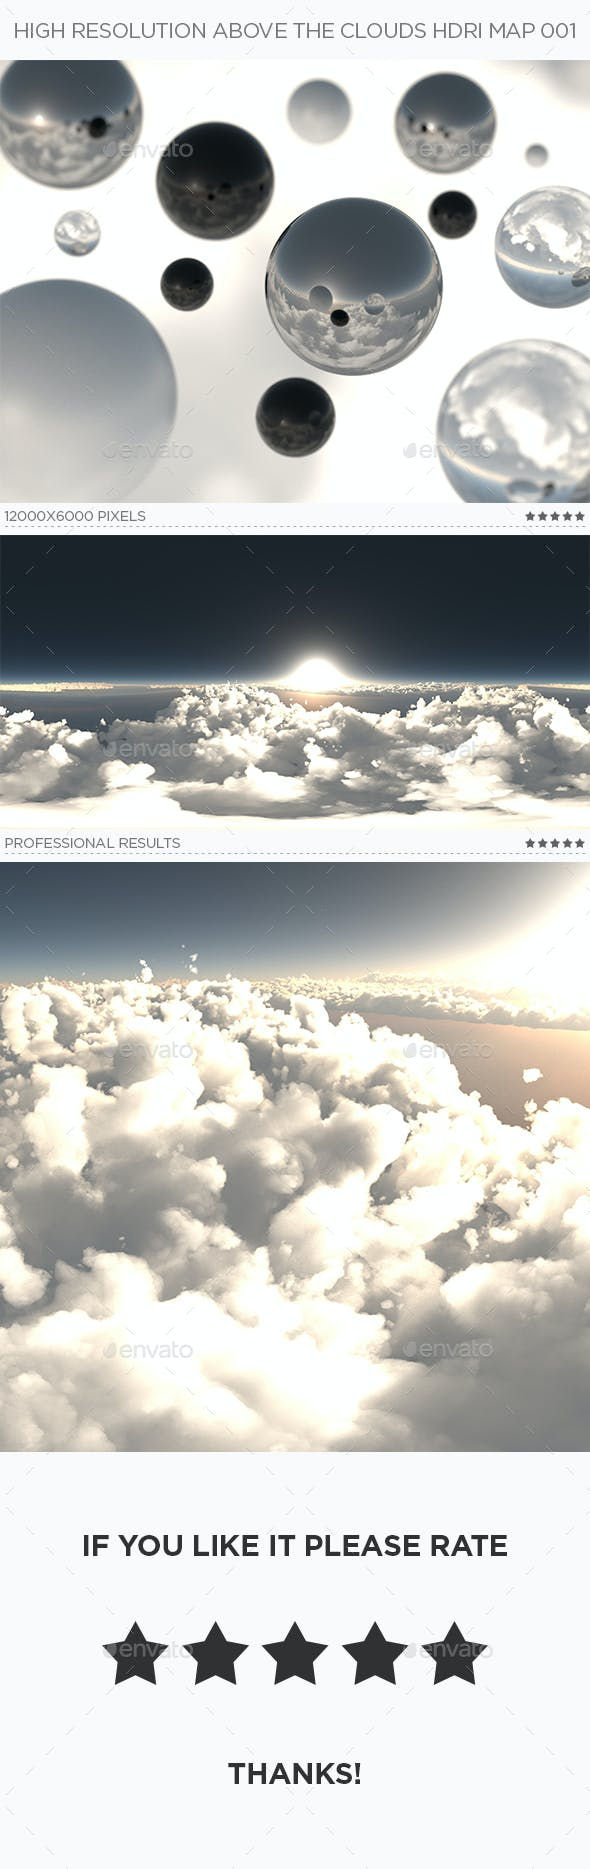 High Resolution Above The Clouds HDRi Map 001 - 3DOcean Item for Sale